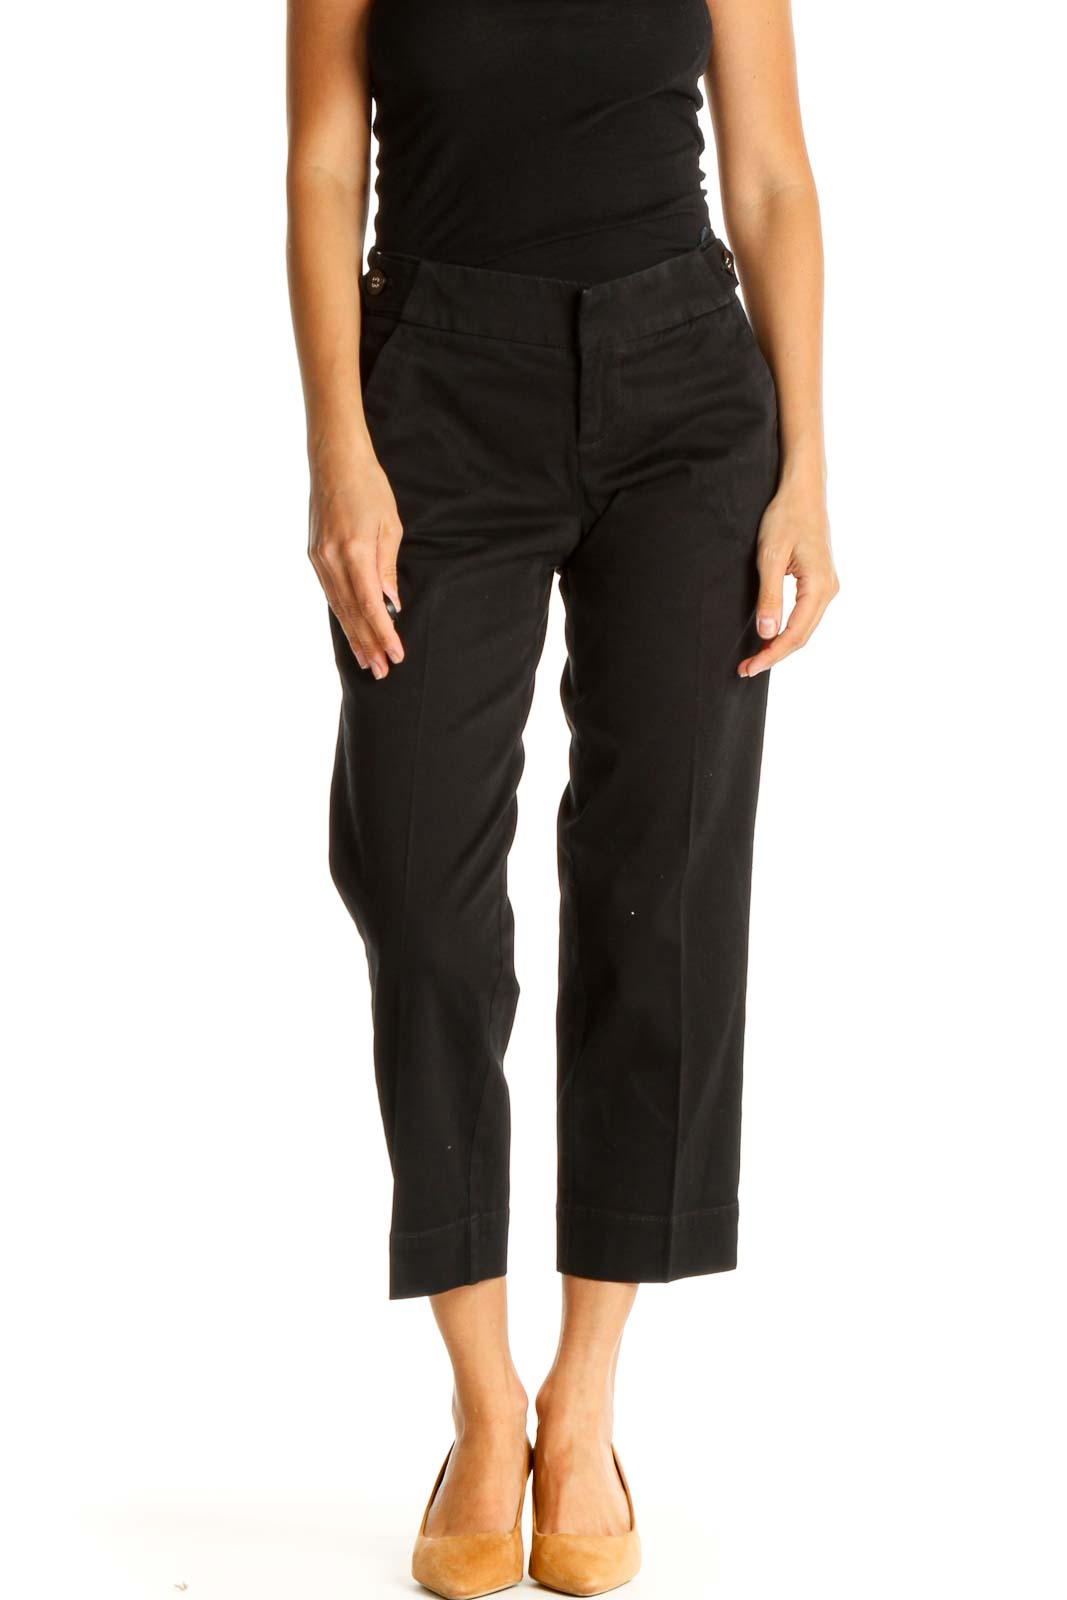 Black Solid All Day Wear Capri Pants Front